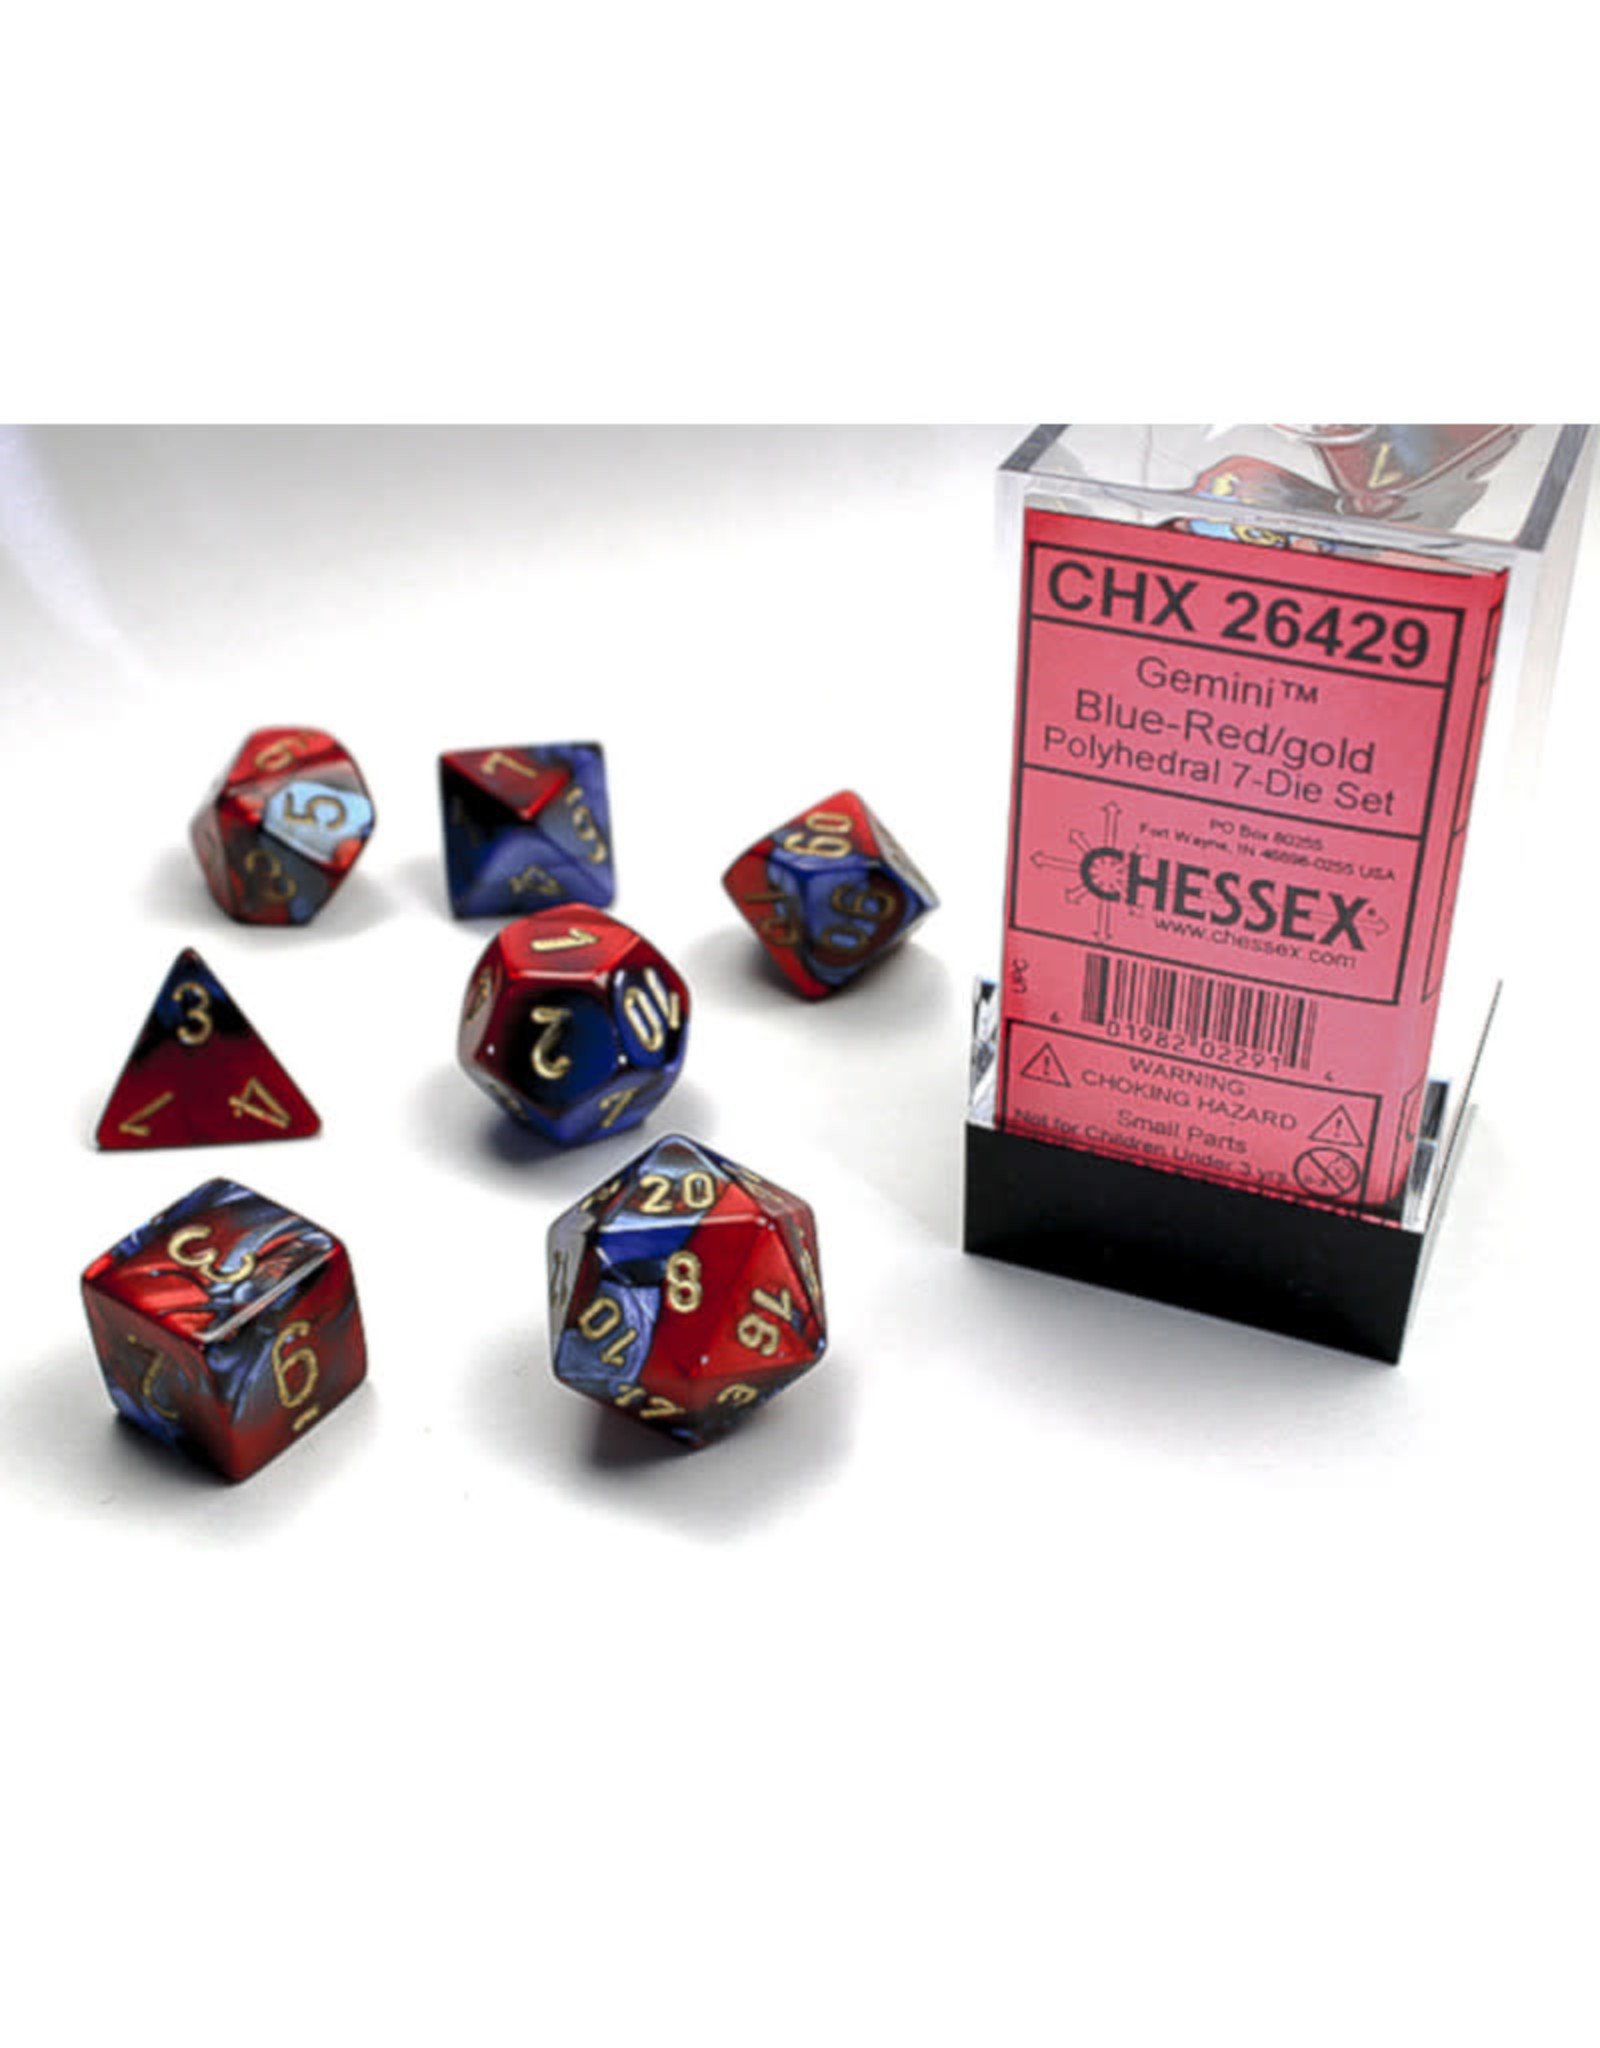 Chessex Polyhedral Dice Set: Gemini Blue Red/Gold (7)